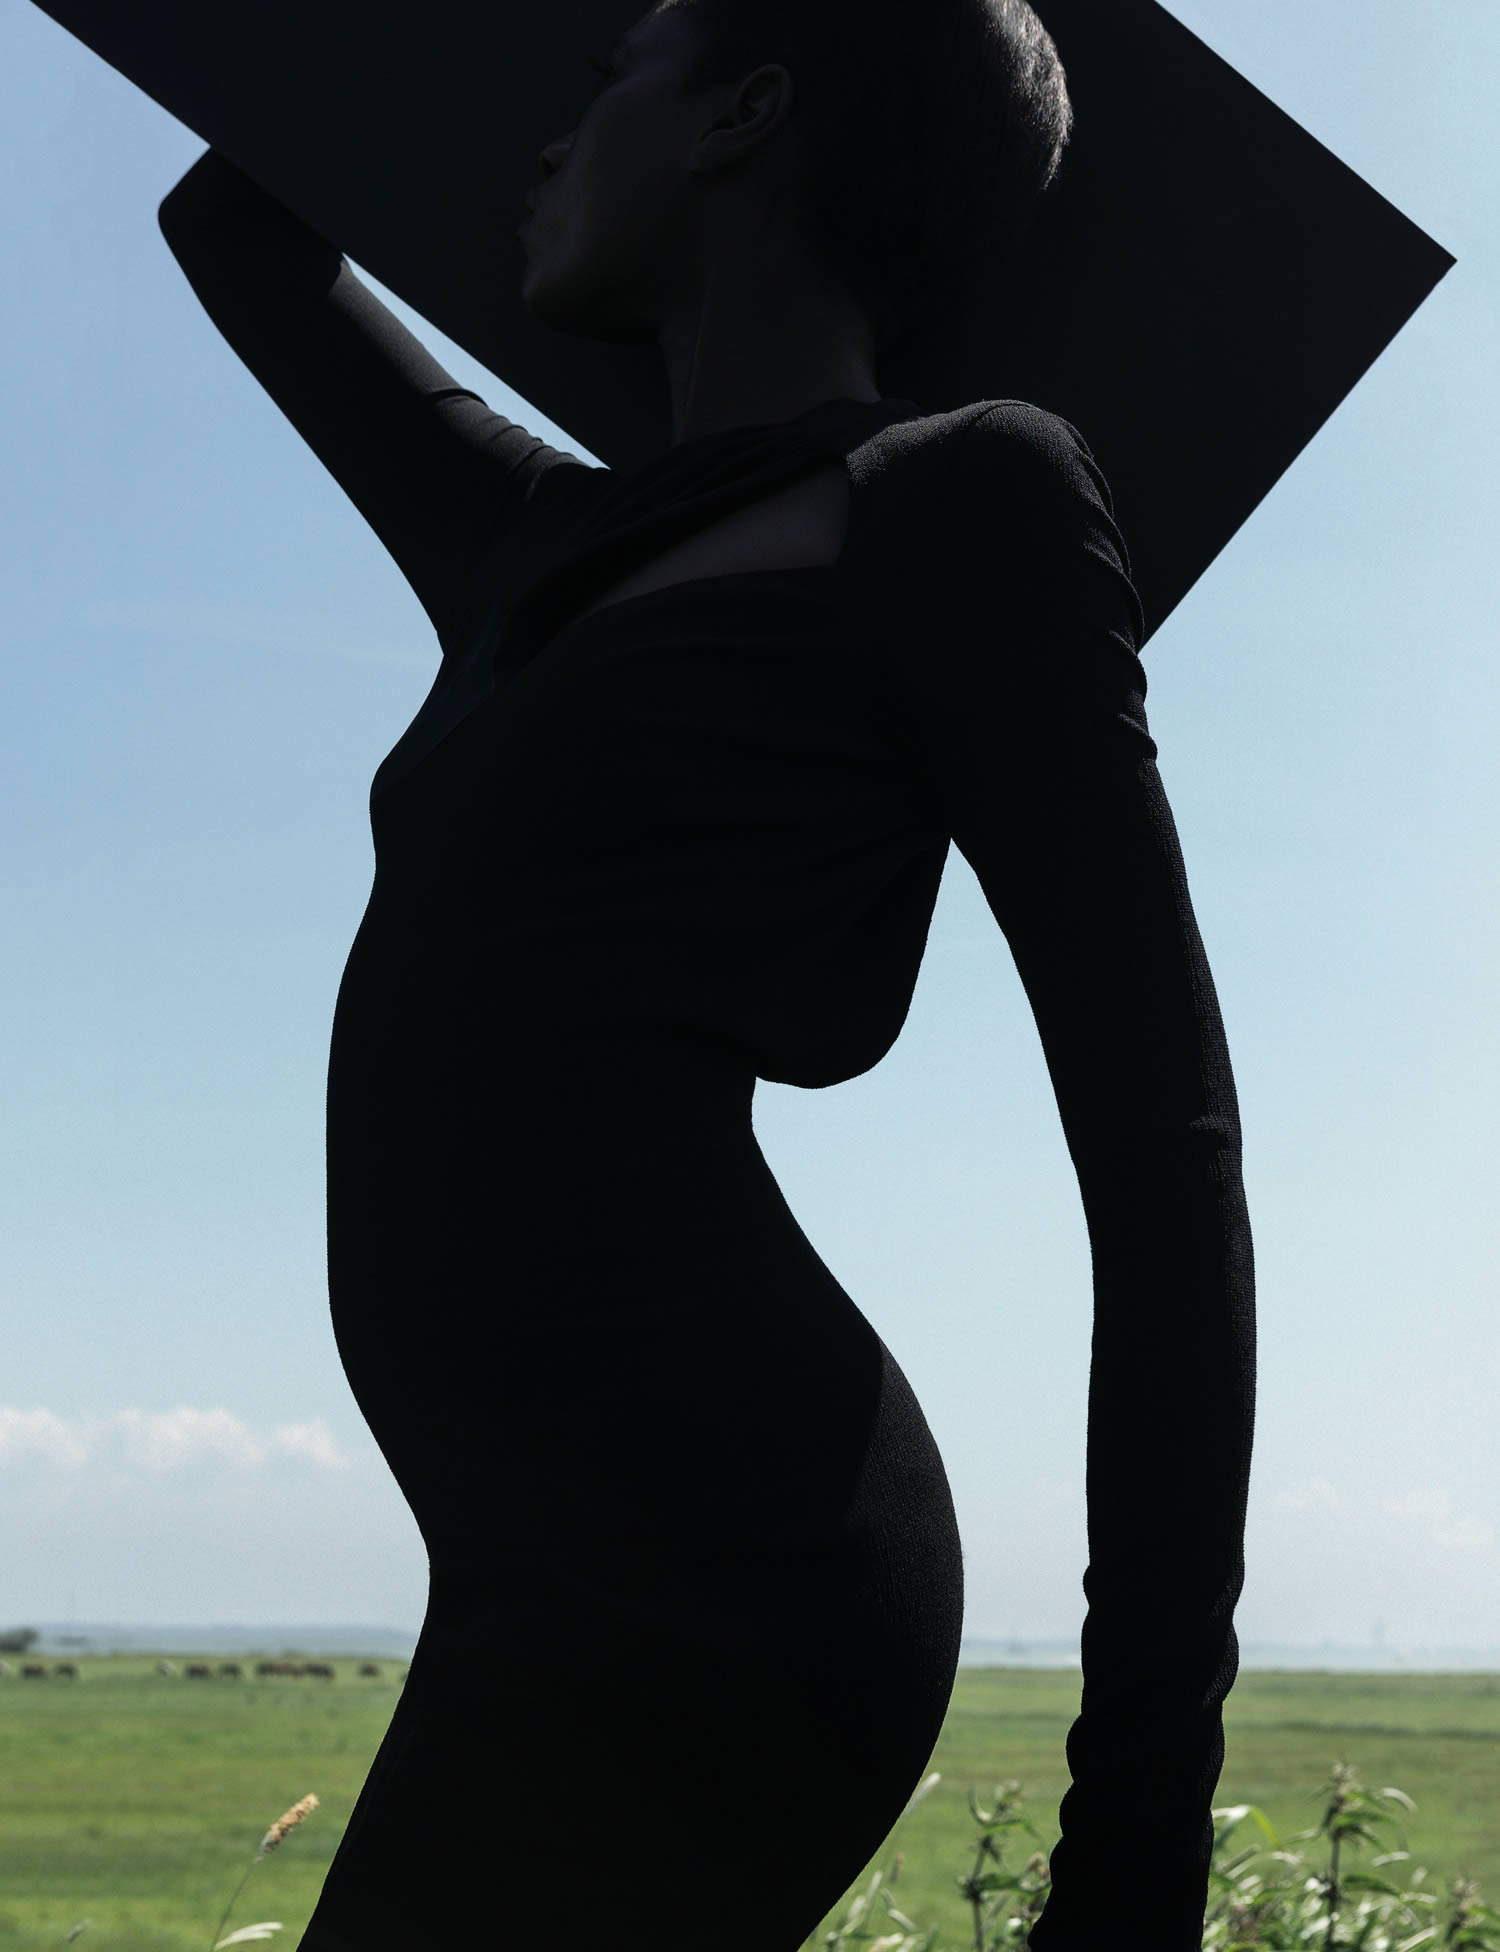 african woman posing against blue sky, photo by viviane sassen